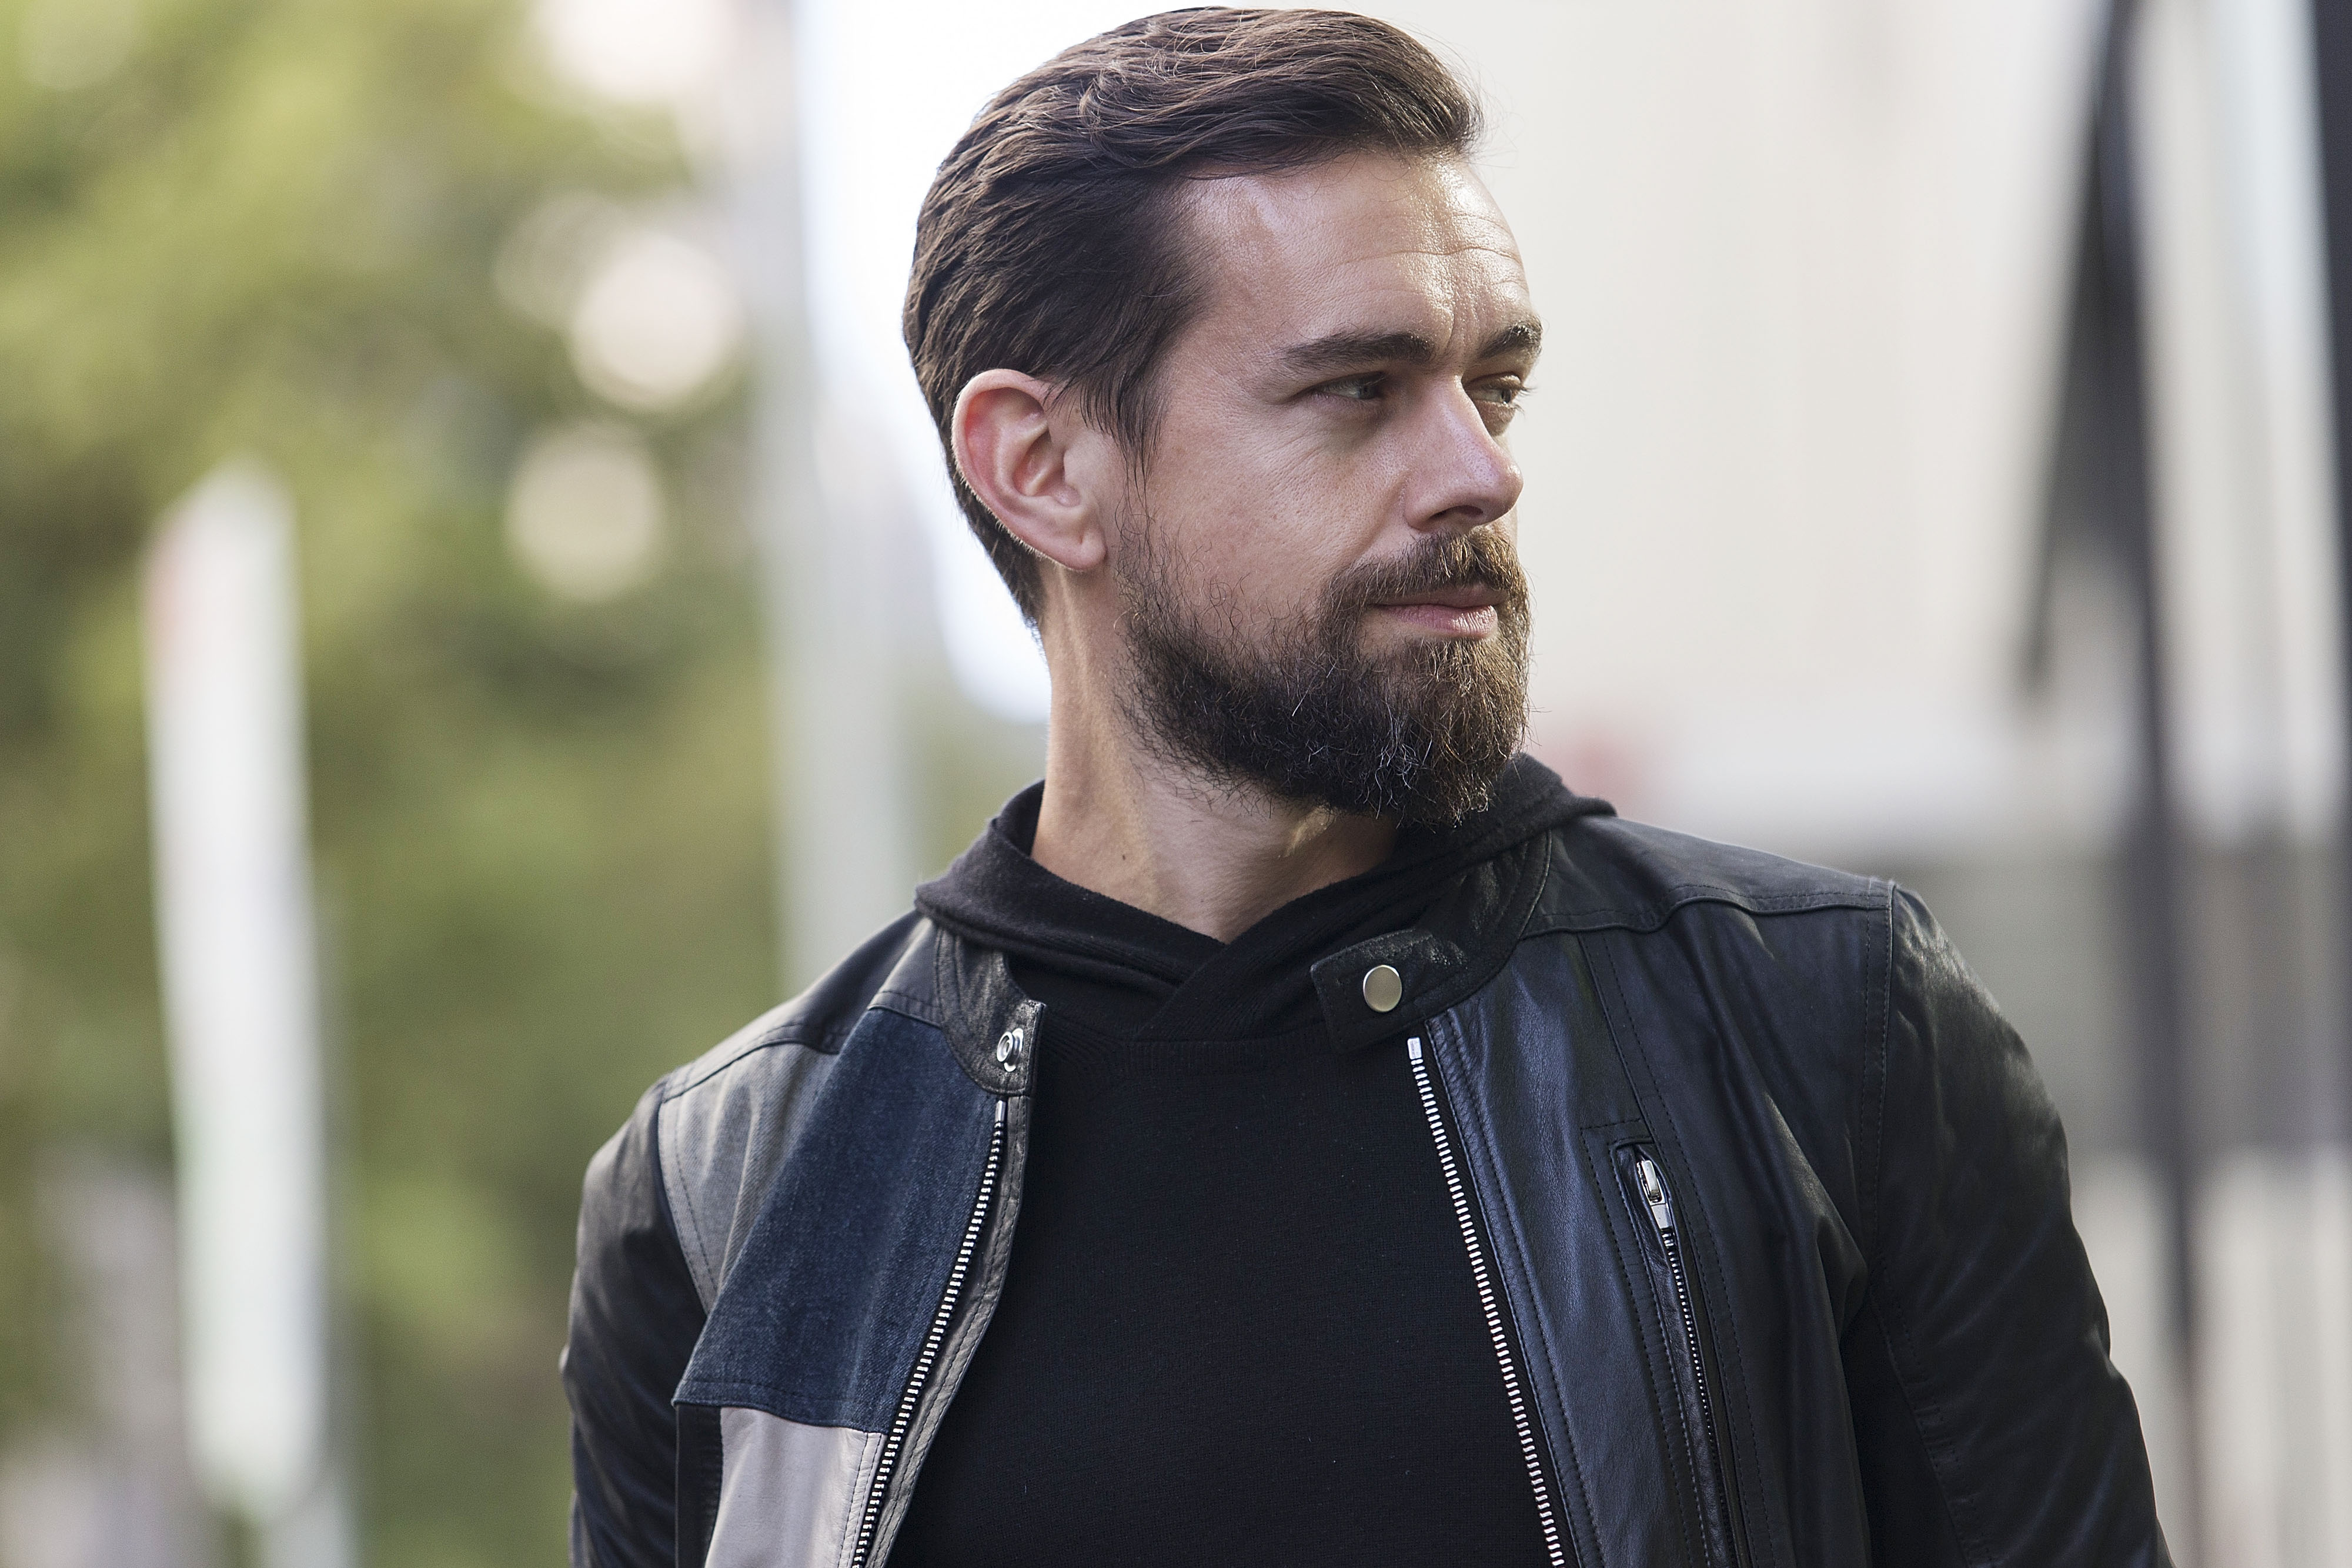 Twitter CEO Jack Dorsey talked to NYU's Jay Rosen for an hour, on the record. Read and listen to the full interview here.